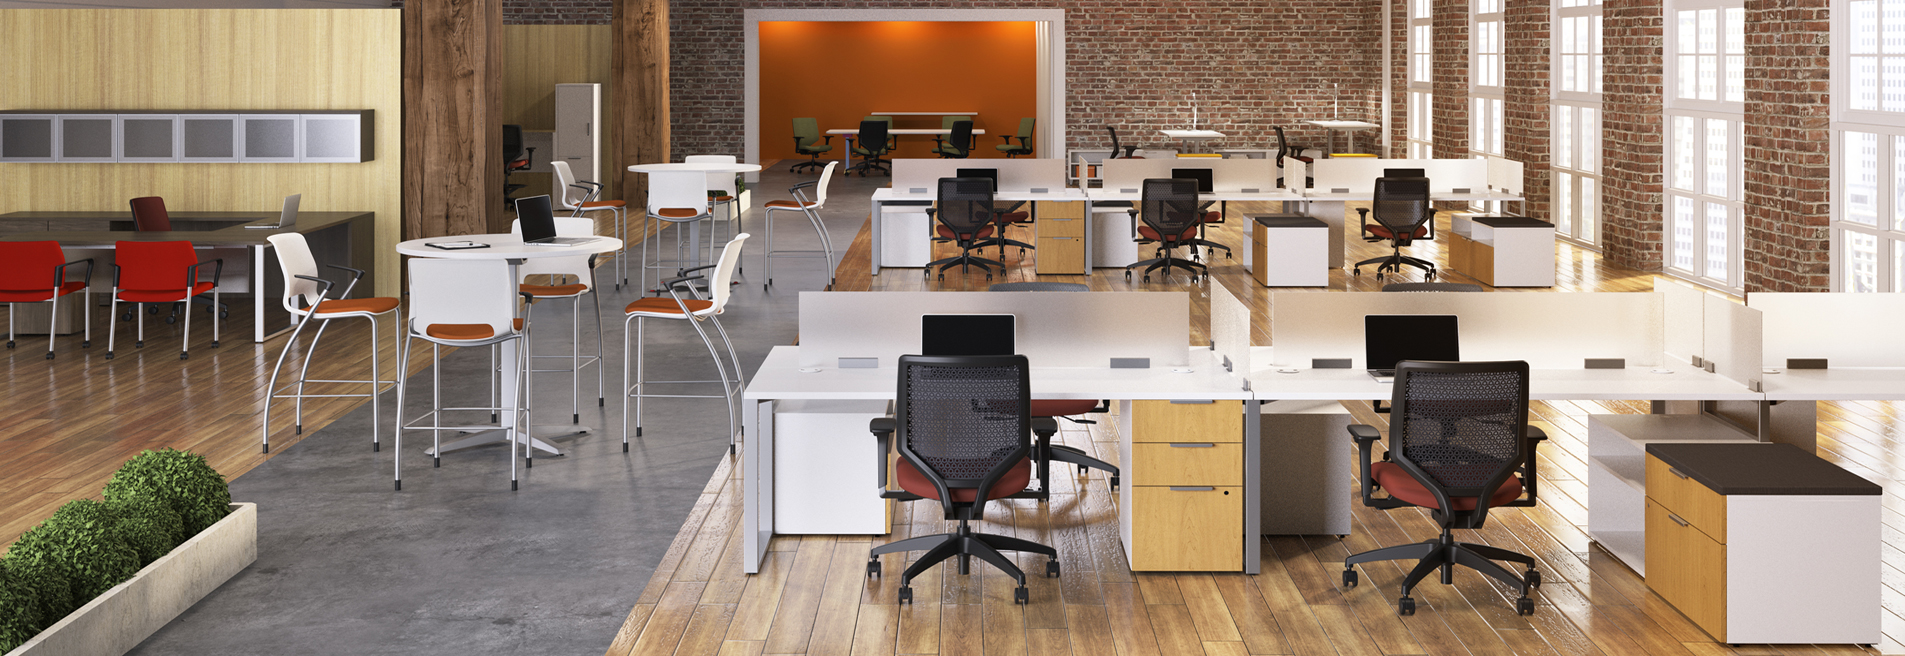 HON Office Chairs - Hon Task Chair  HON Chair for Conference